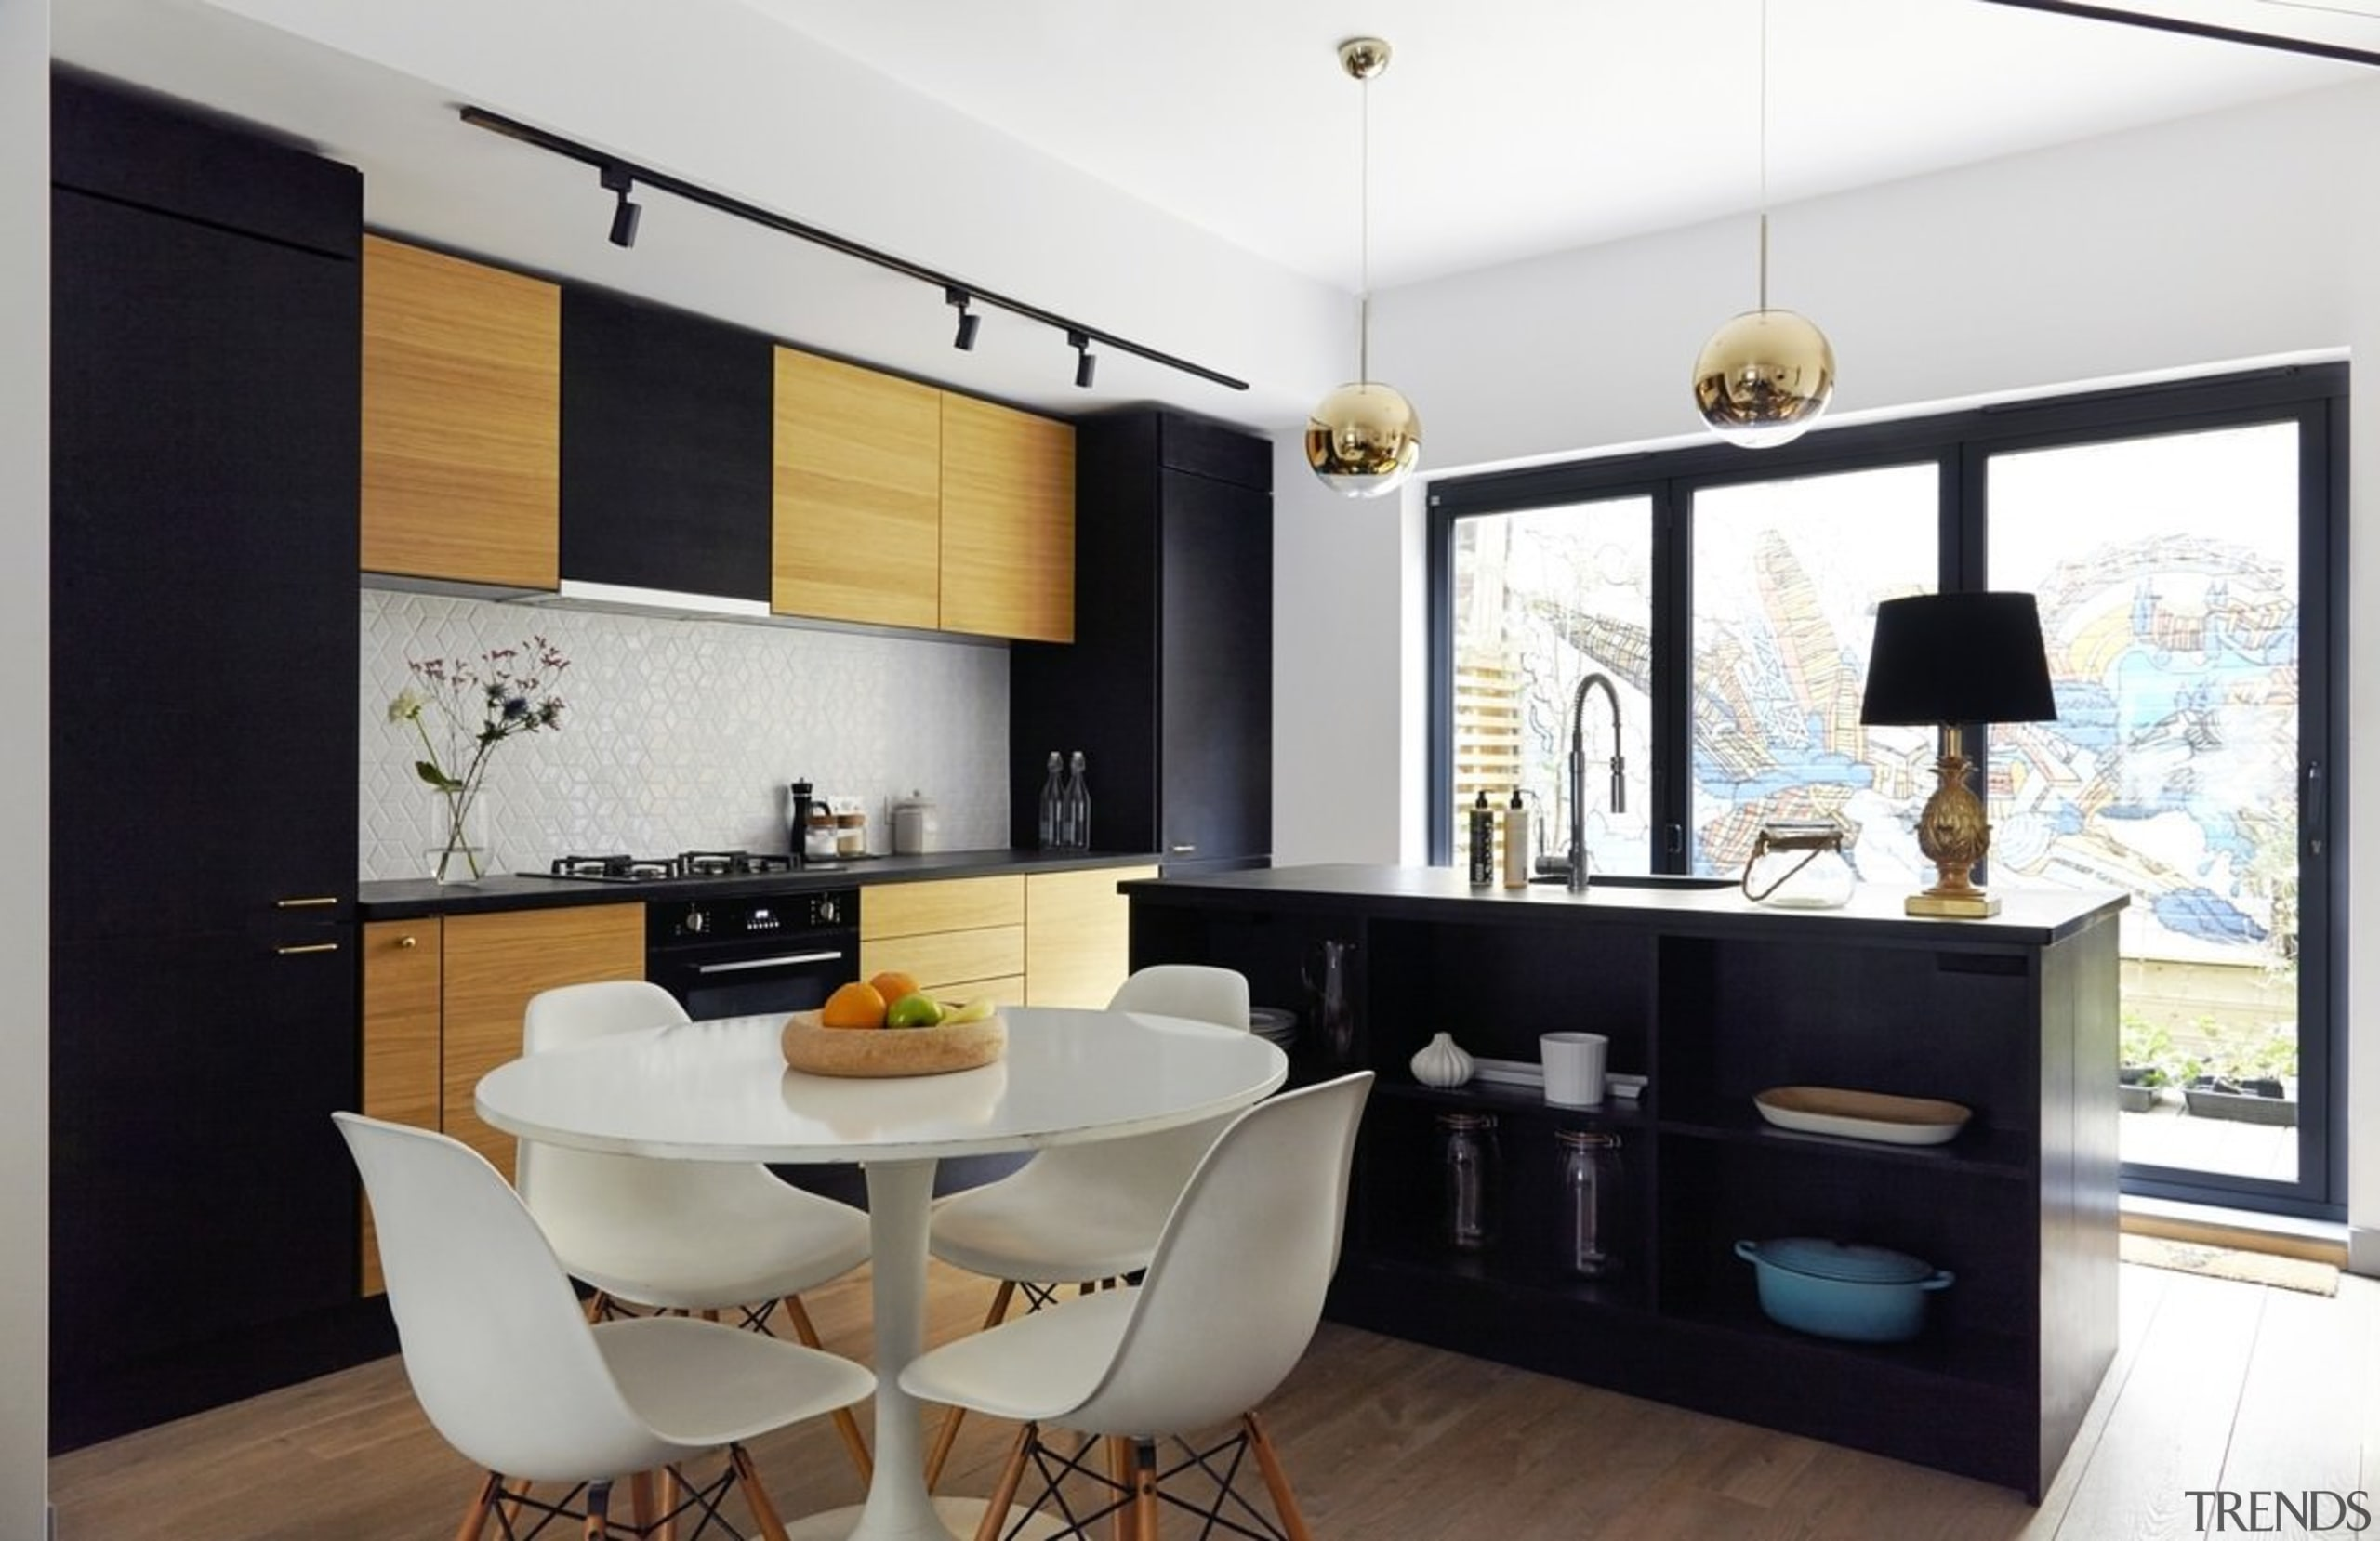 Arranging the island slightly differently means it's much ceiling, dining room, home, interior design, interior designer, living room, property, real estate, room, white, black